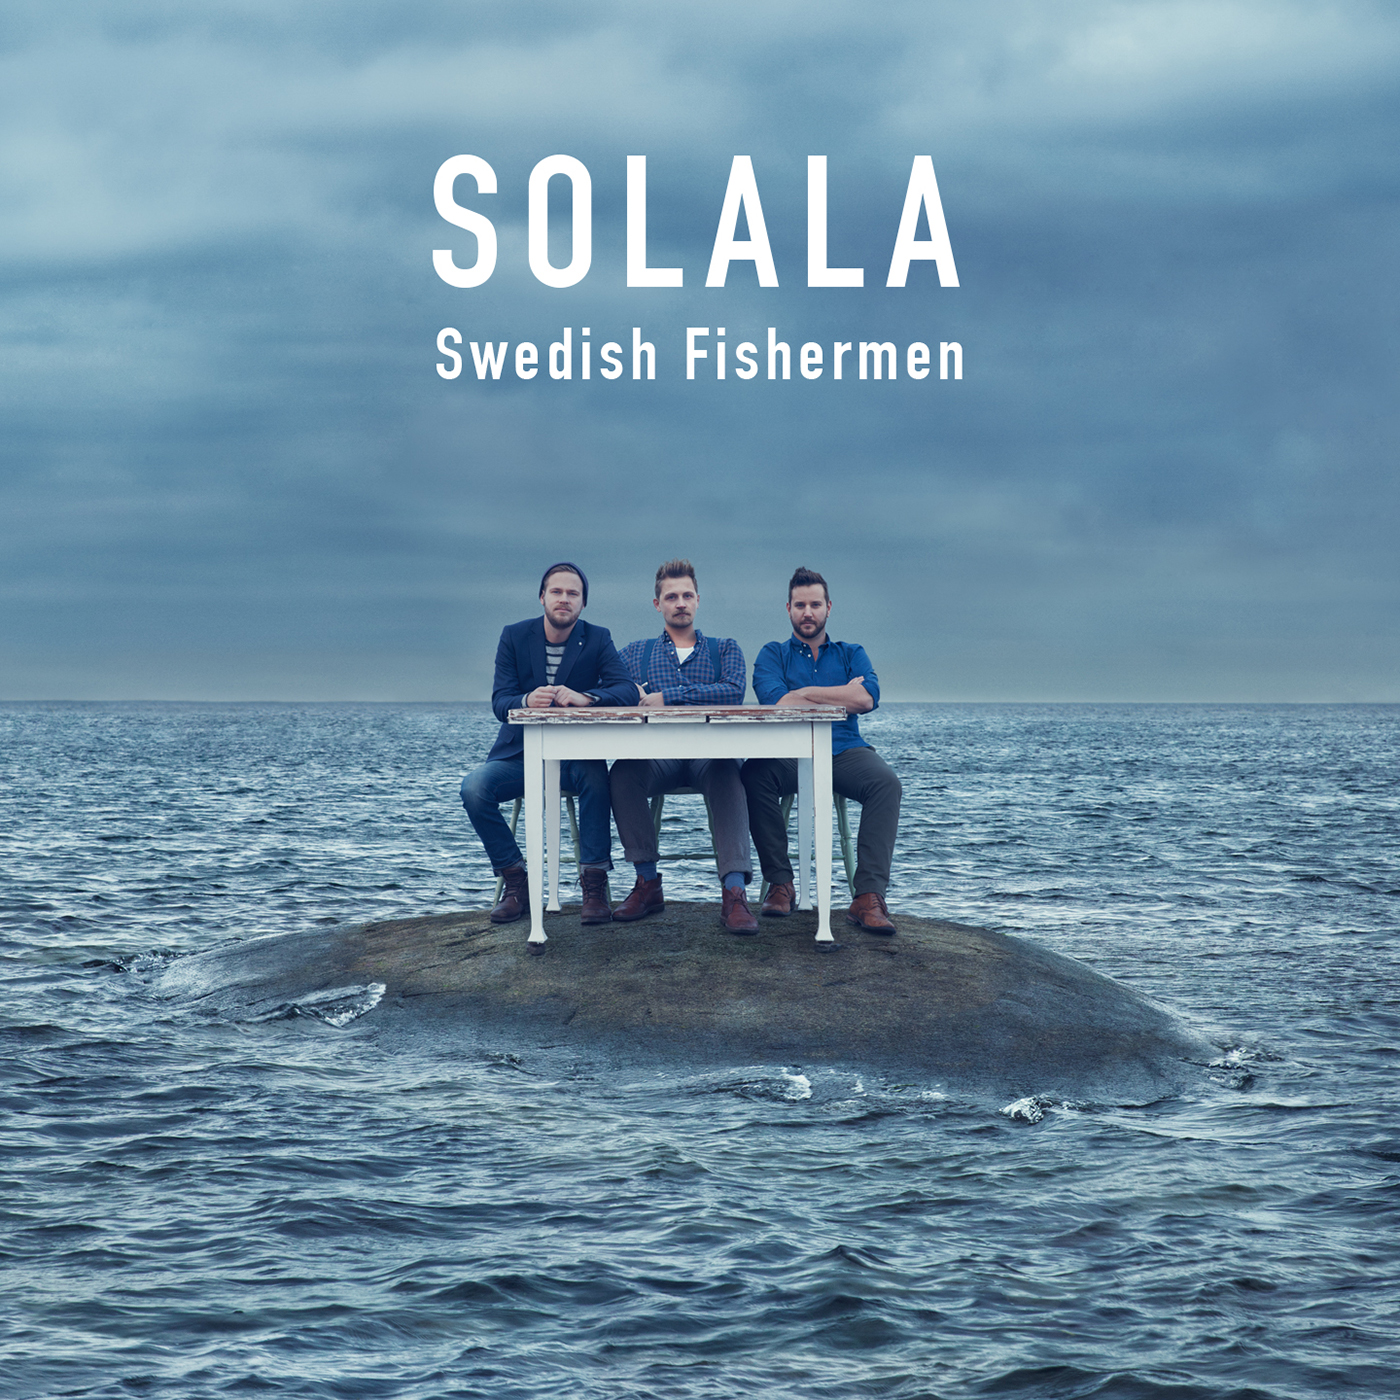 Solala - Swedish Fishermen